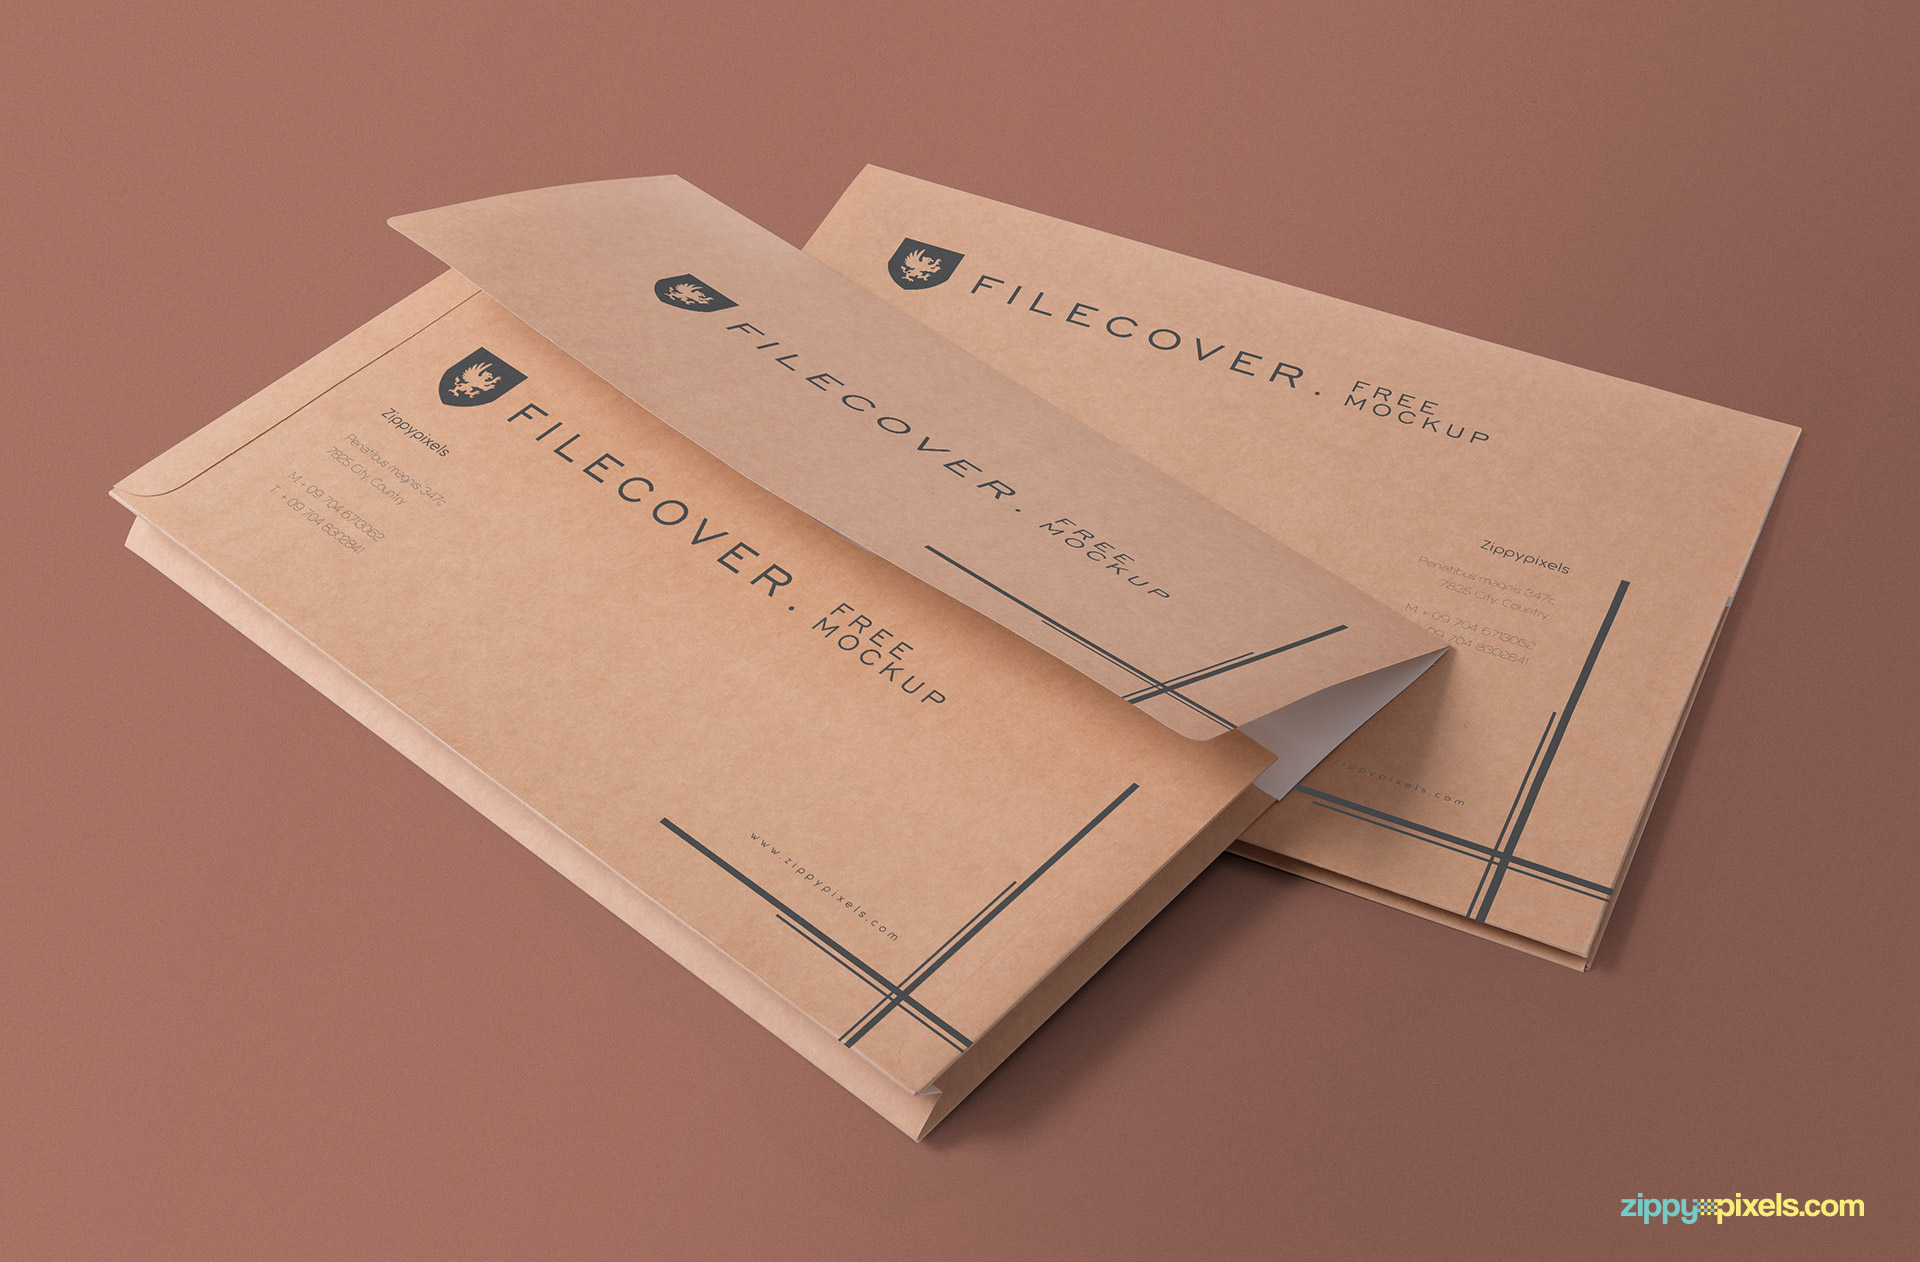 Add any design or color to the background of this folder mockup.